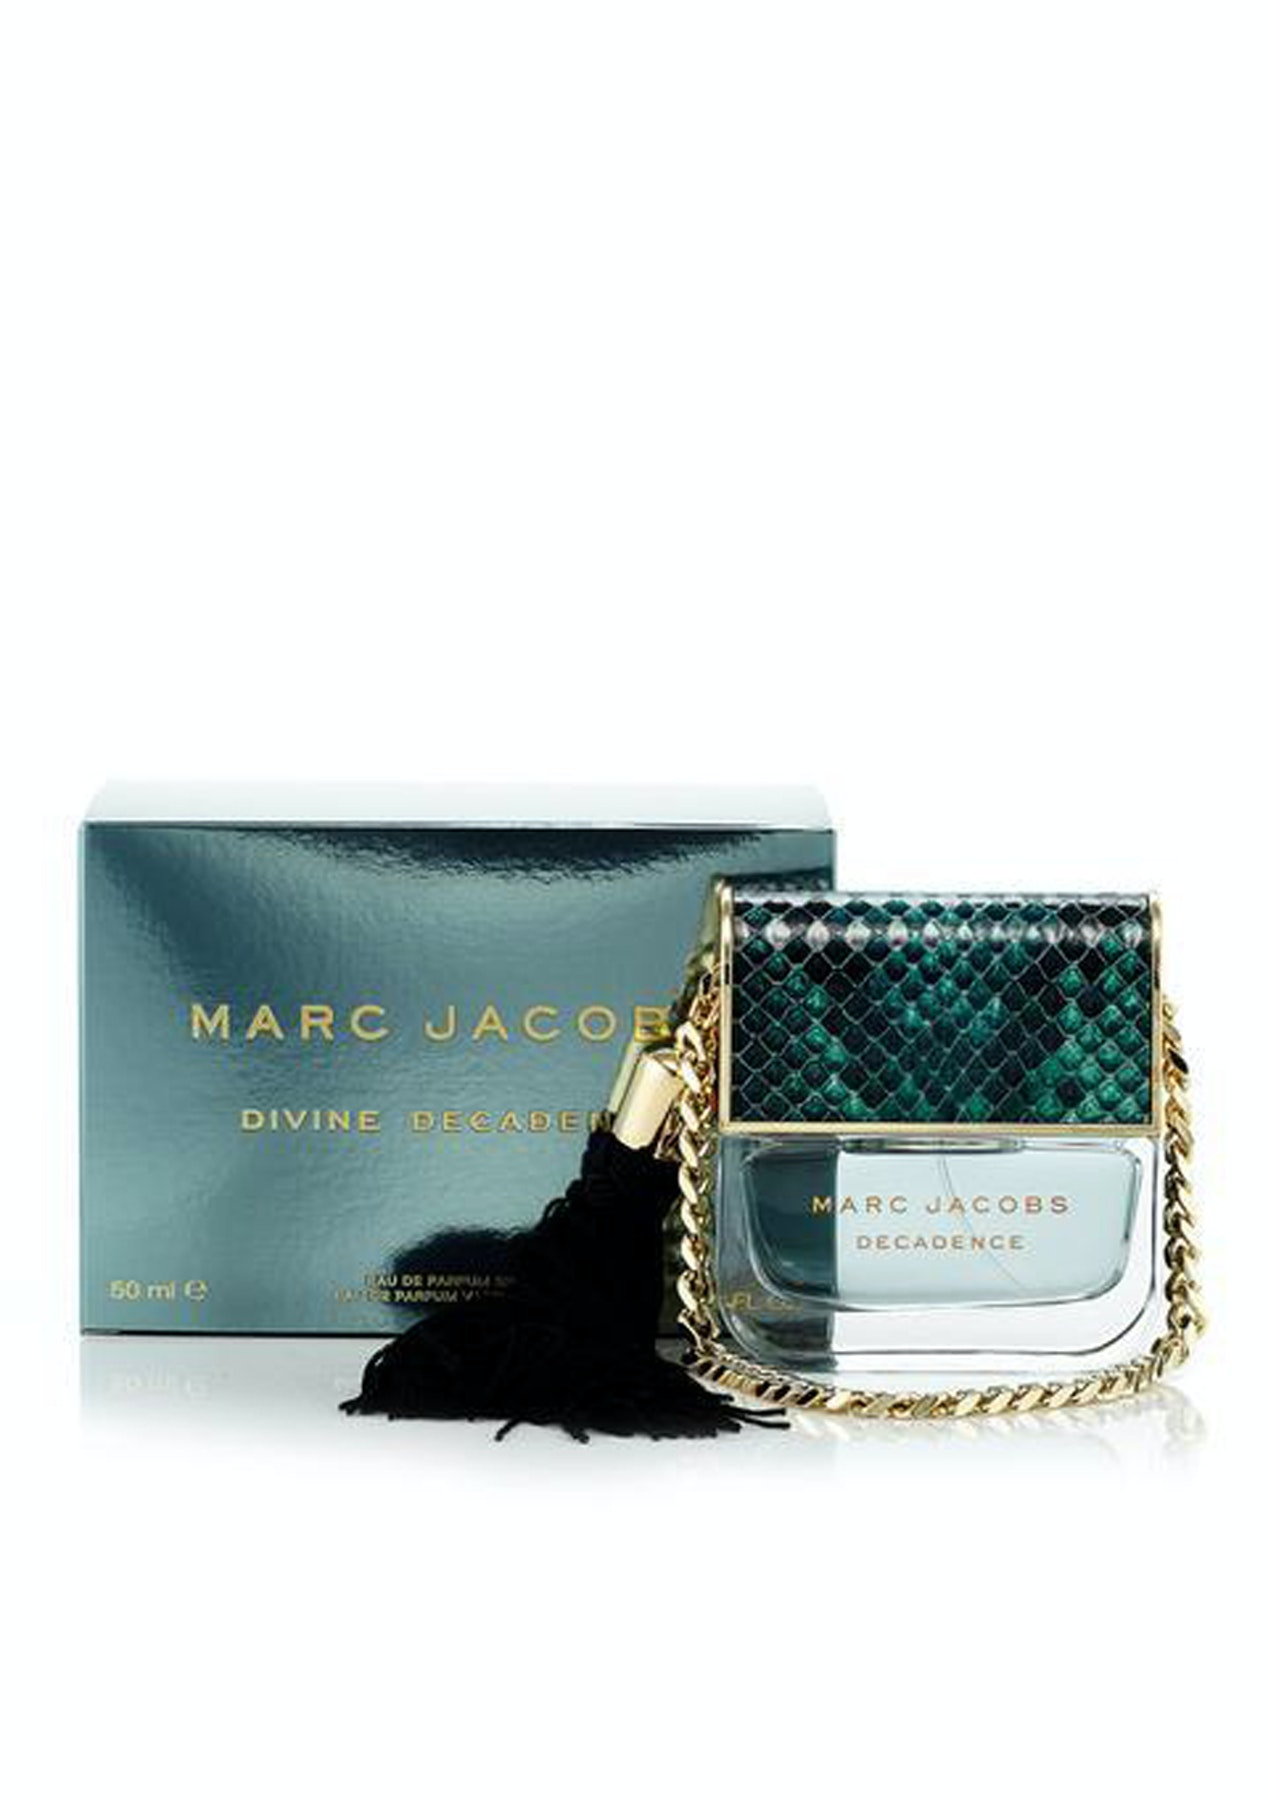 a08652b3d934 Marc Jacobs Divine Decadence 50ml EDP - Fragrance Gift ideas - Onceit